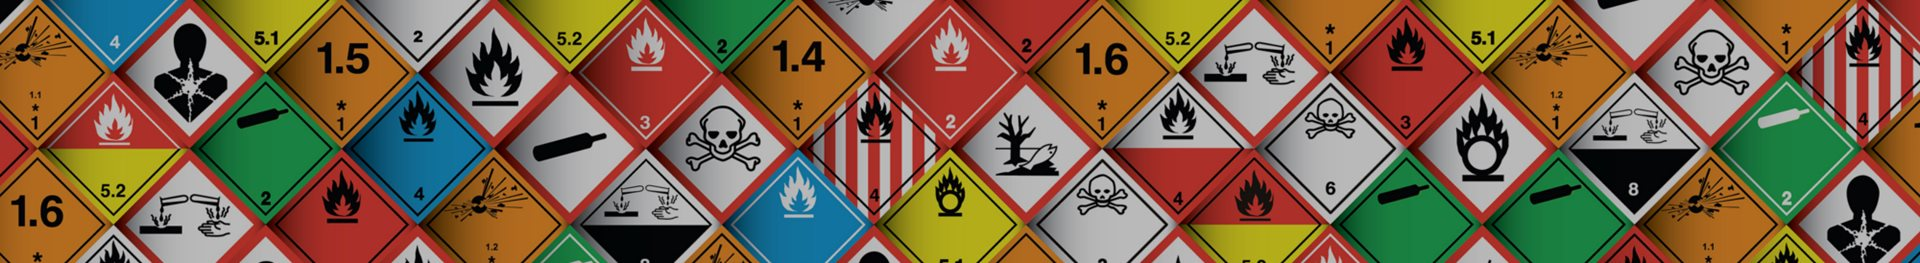 Hazmat 2015 workshops and scenarios